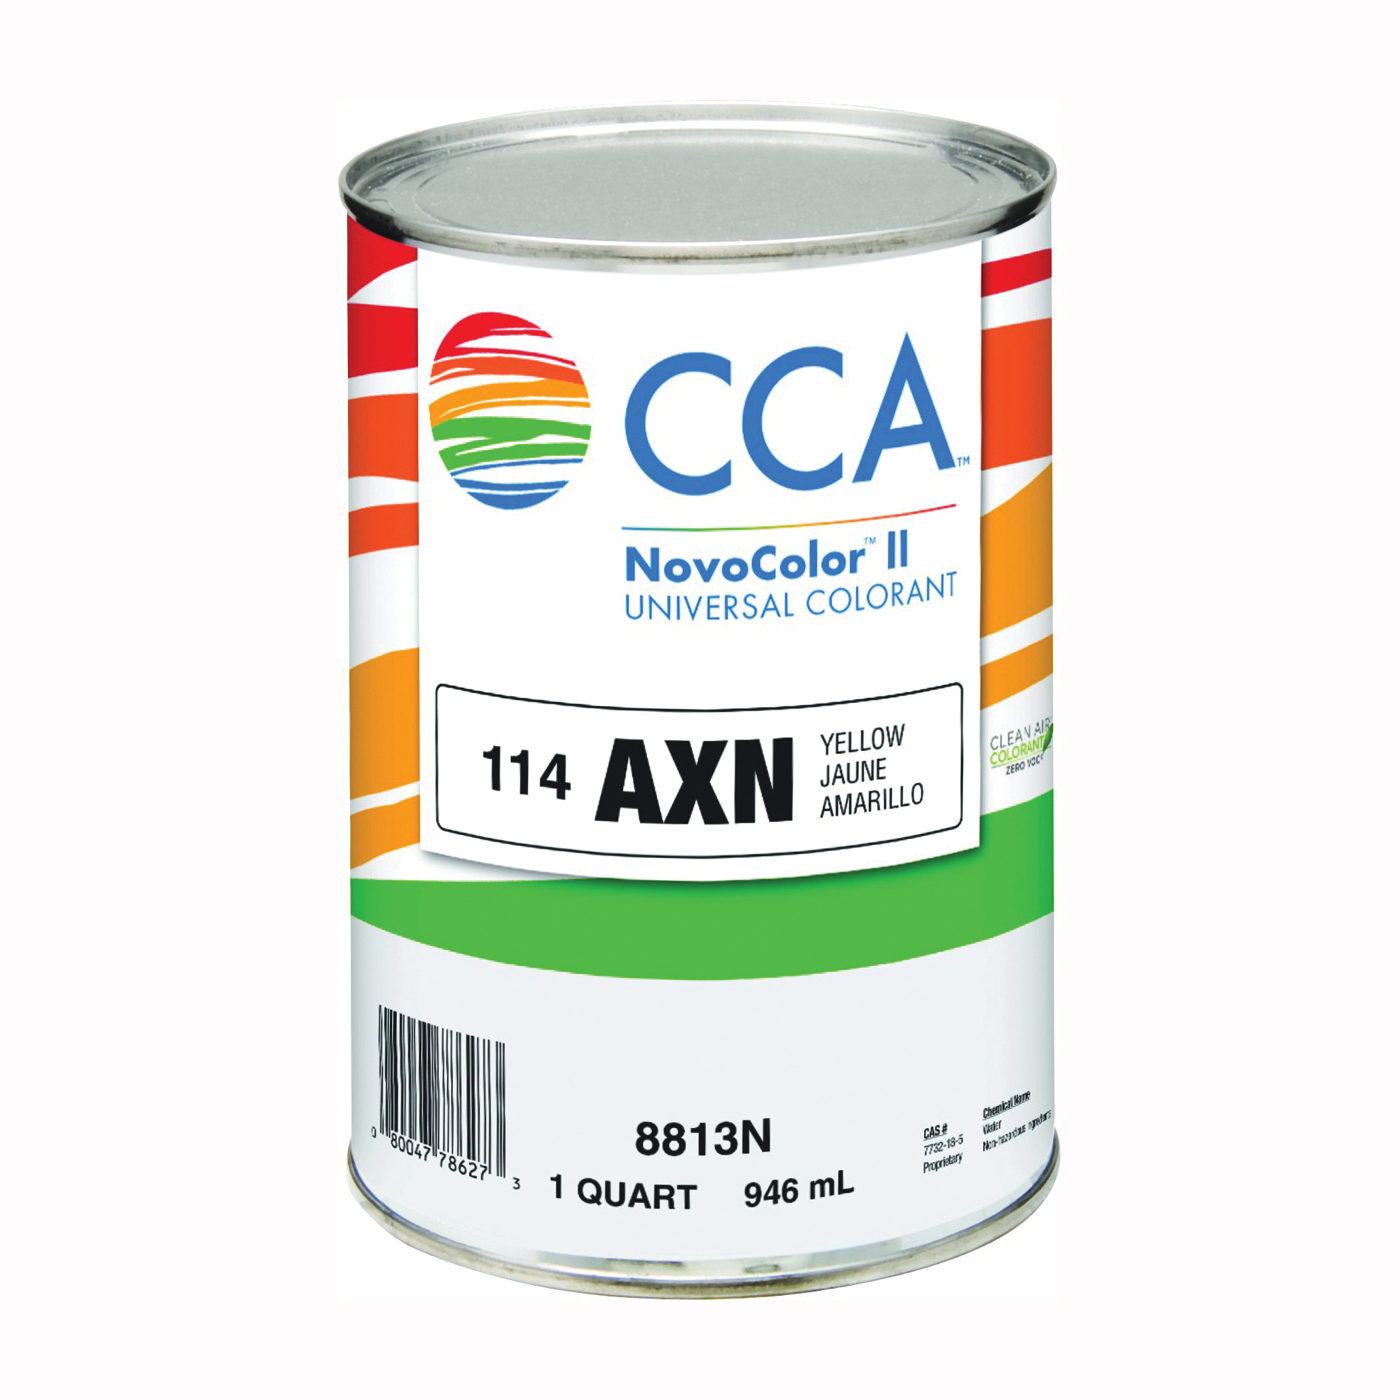 Picture of CCA NovoColor II 8813N Universal Colorant, Yellow, Liquid, 1 qt Package